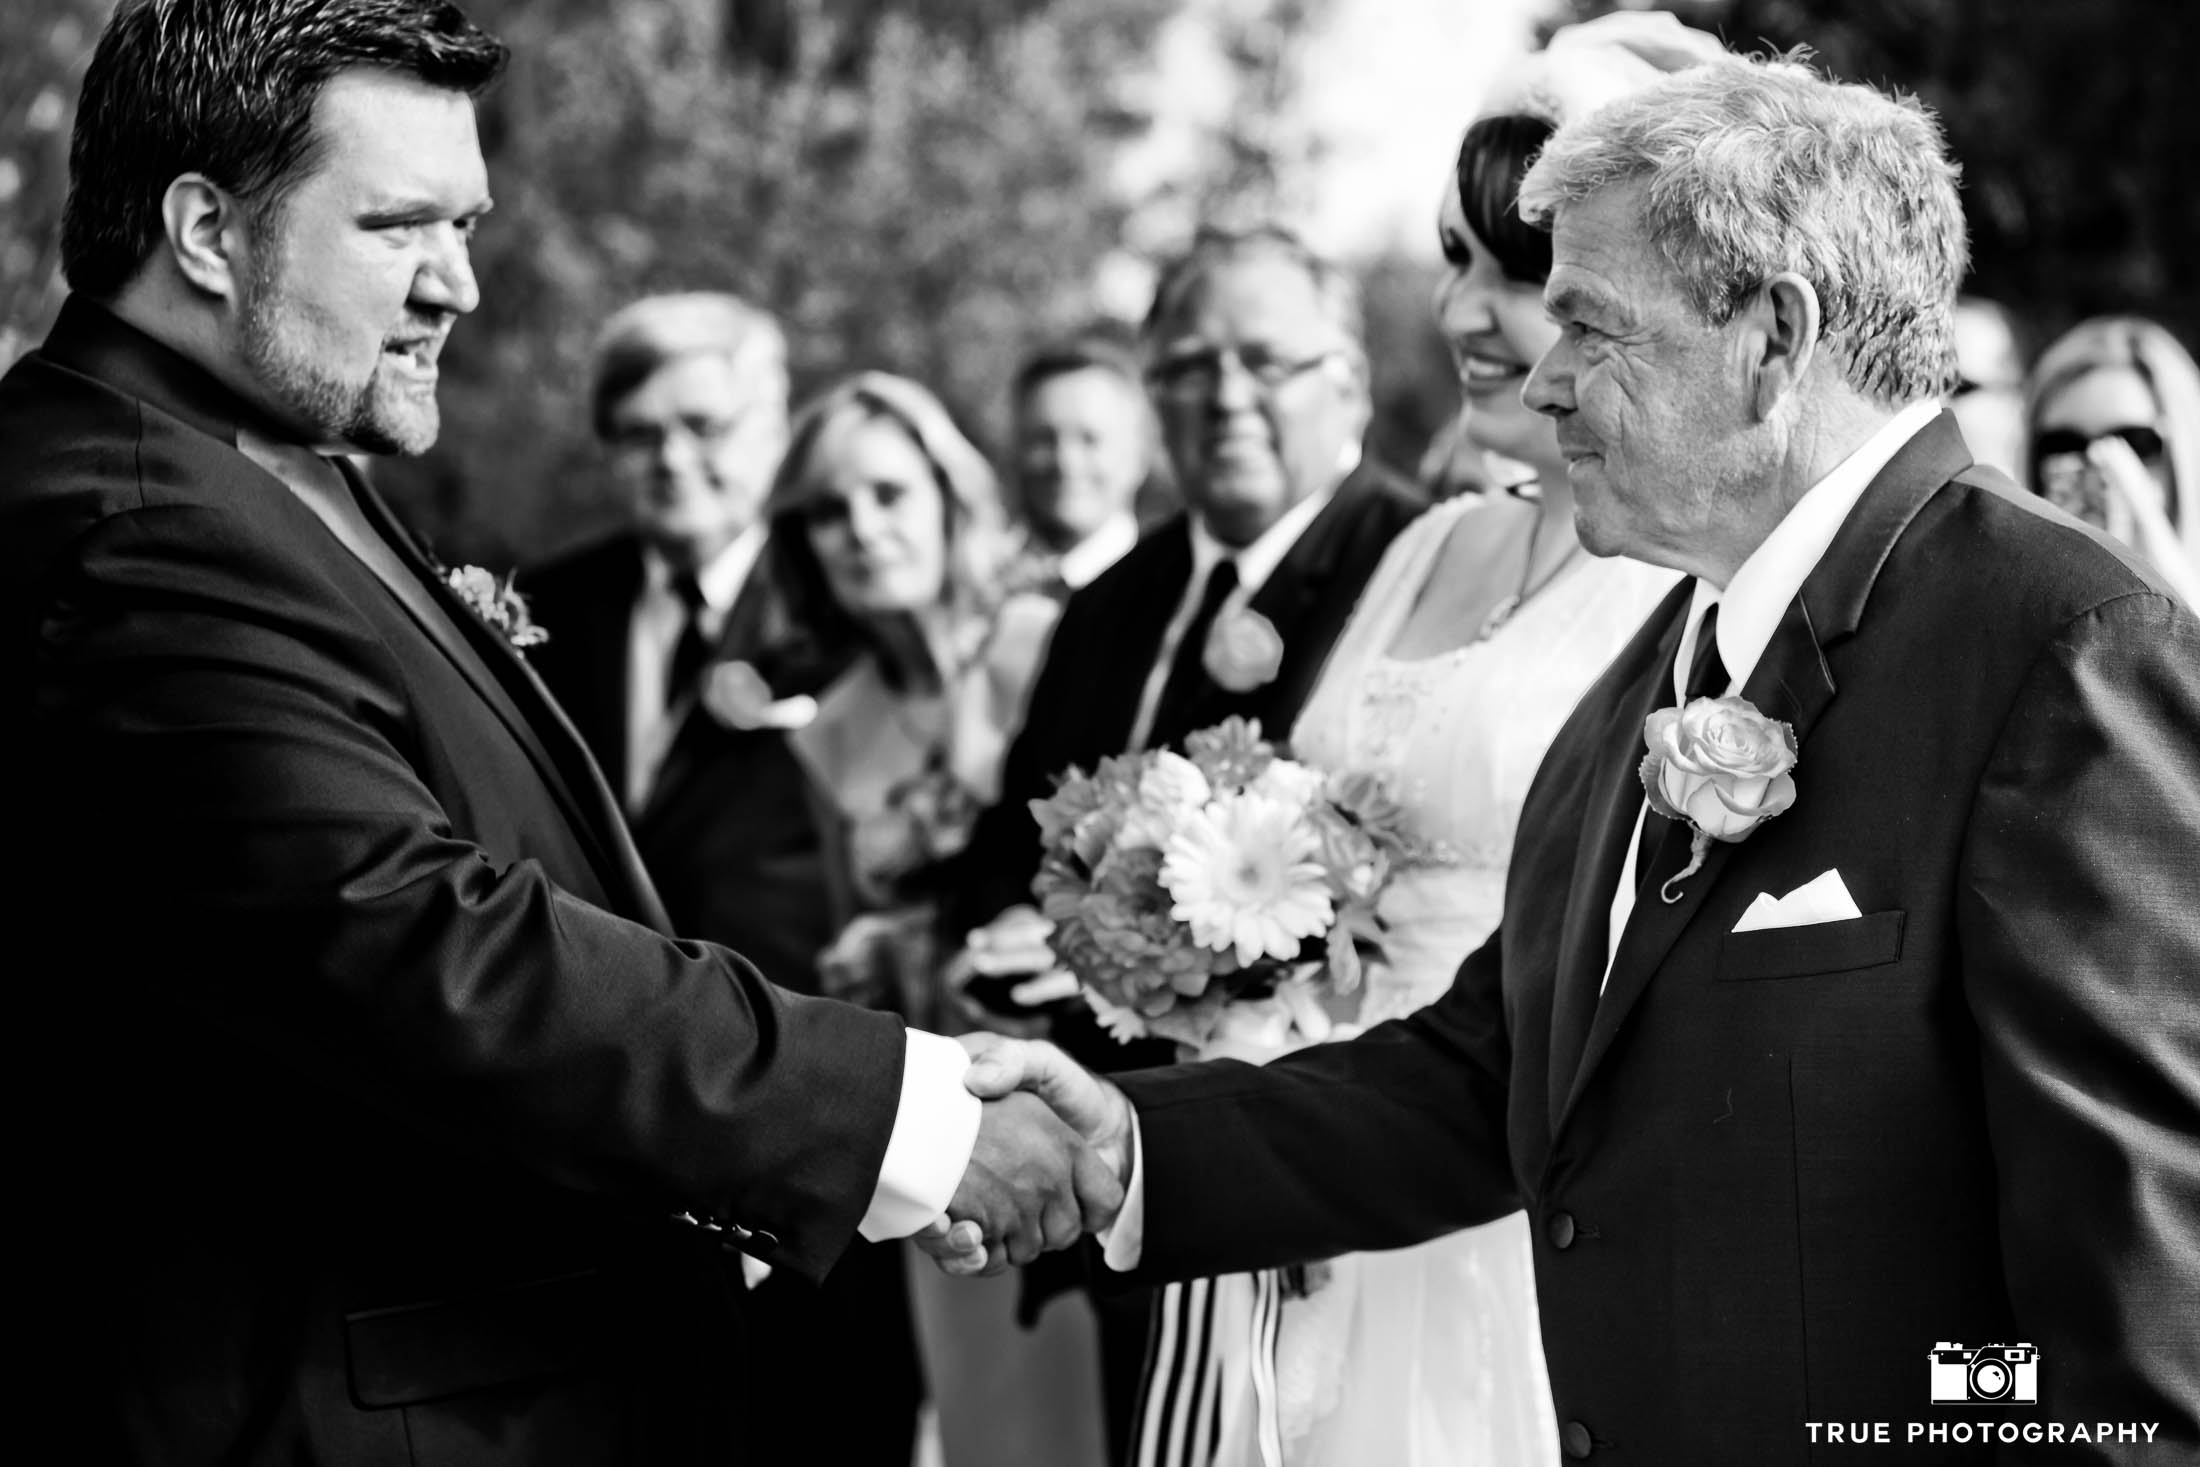 Bride's Dad shakes Grooms hand after walking daughter down wedding aisle